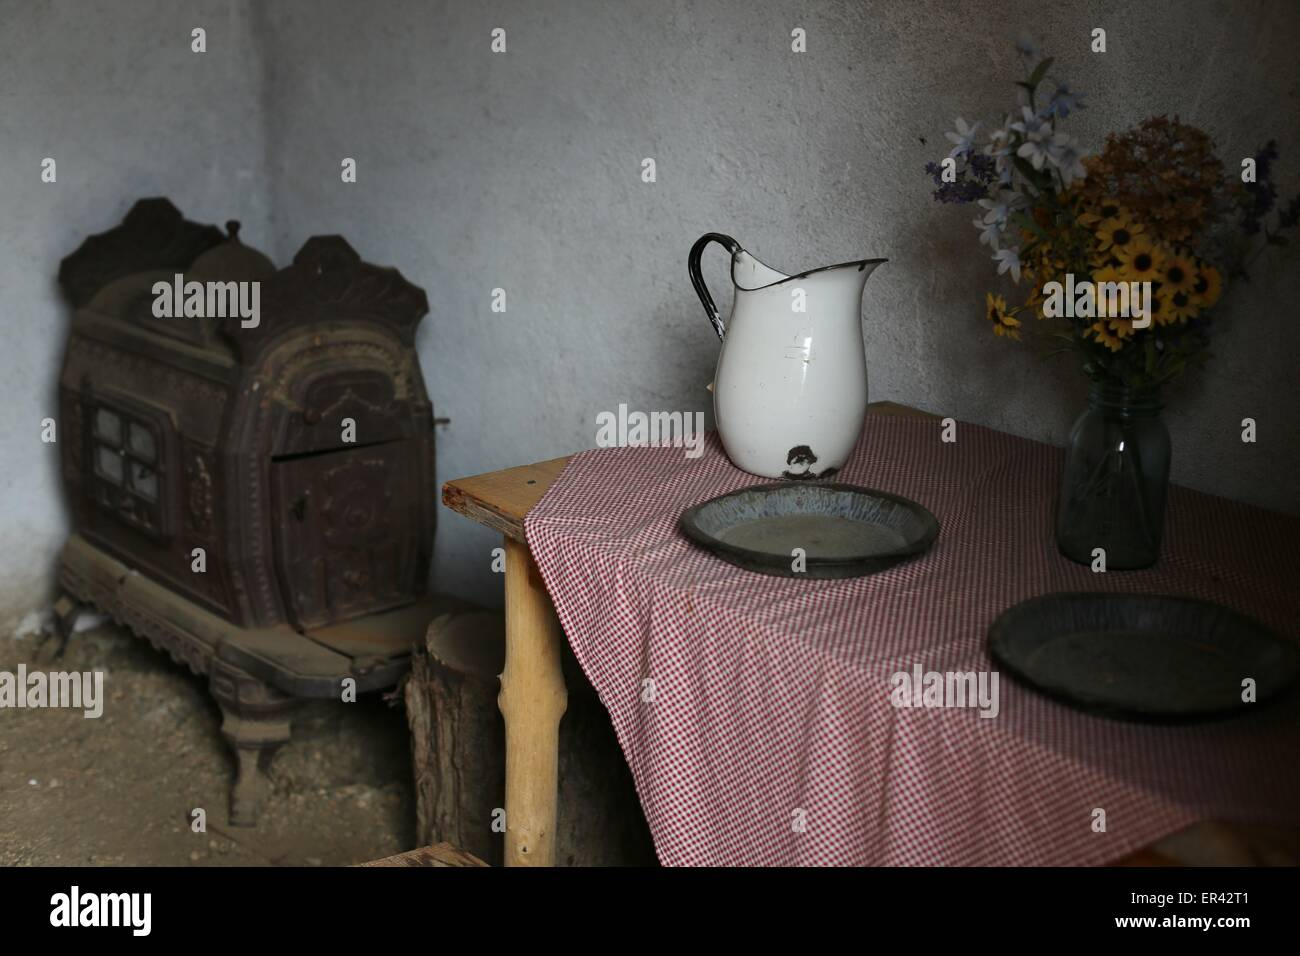 The inside of a dugout home at the Laura Ingalls Wilder museum in Walnut Grove, Minnesota. - Stock Image